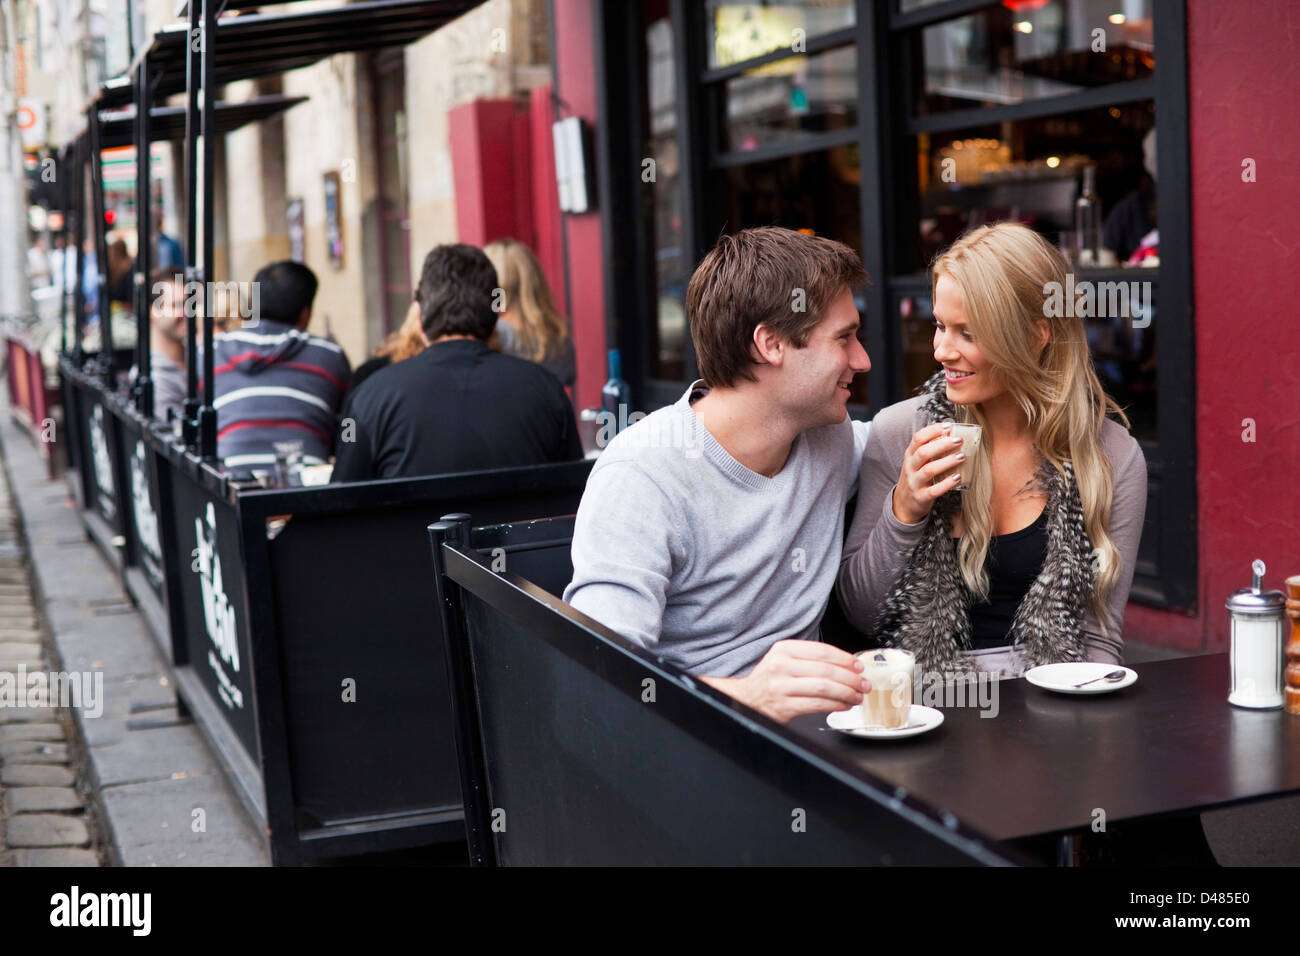 Young couple relaxing in cafe. Fitzroy, Melbourne, Victoria, Australia - Stock Image